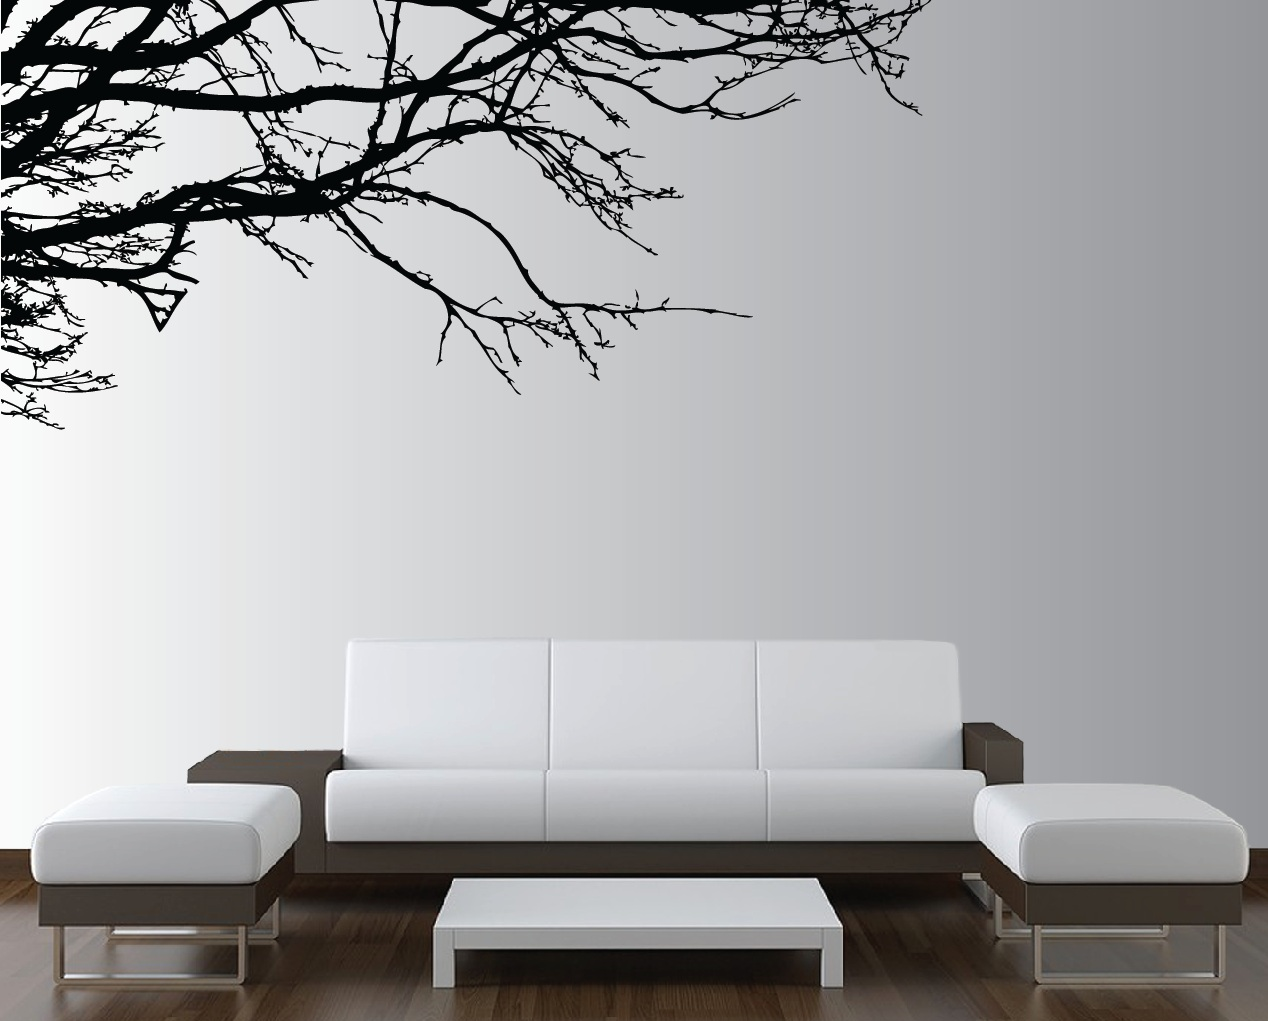 tree-wall-decal-1130-living-room-decor.jpg